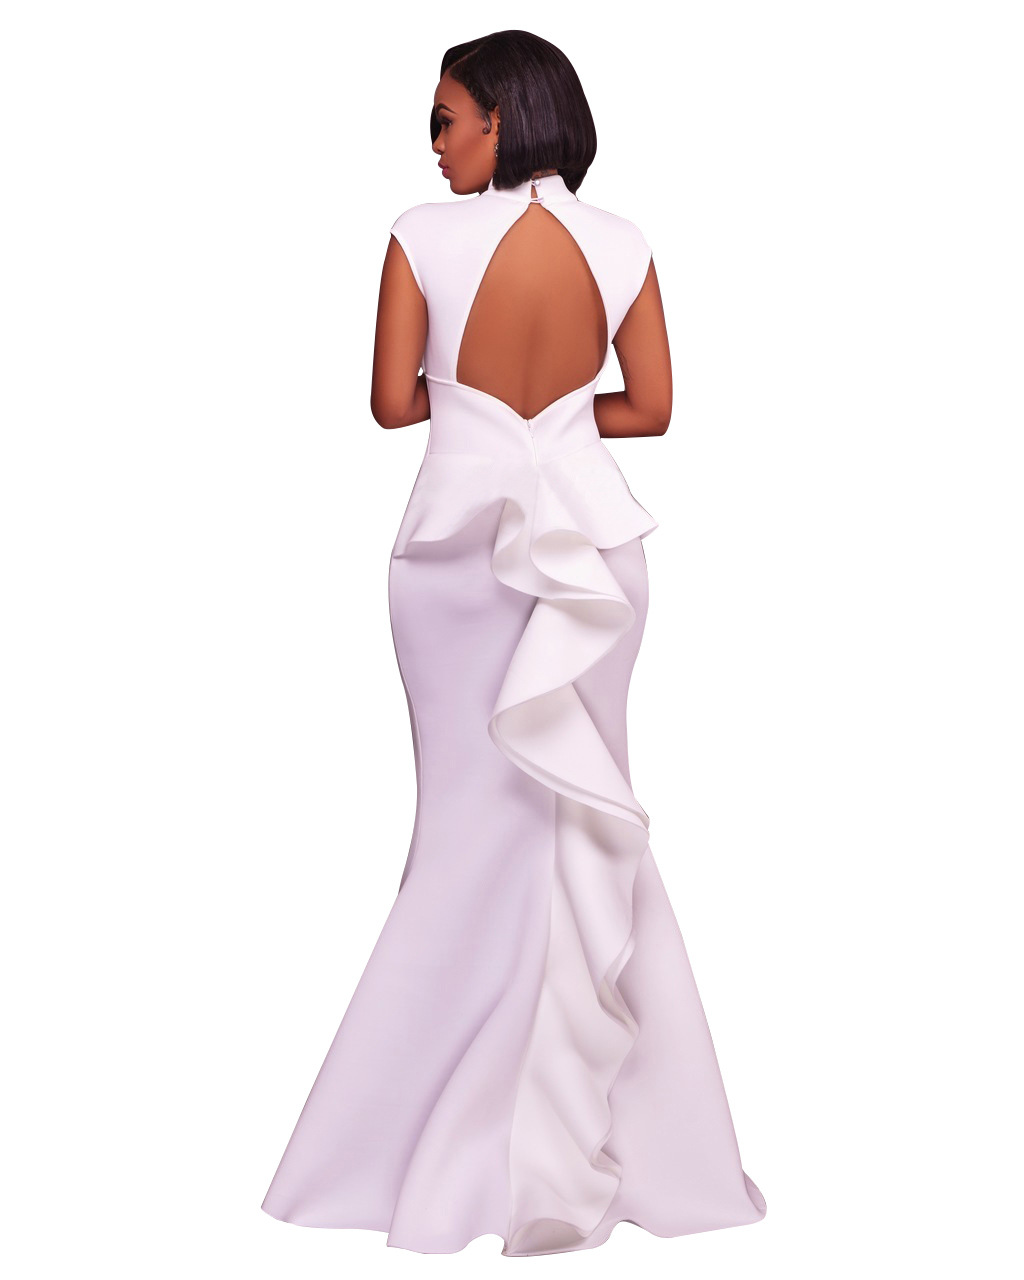 2017 Women Summer Fashion White High Neck Sexy Dress Party Mermaid Dresses Ruffles Hollow Out Backless Maxi Dress